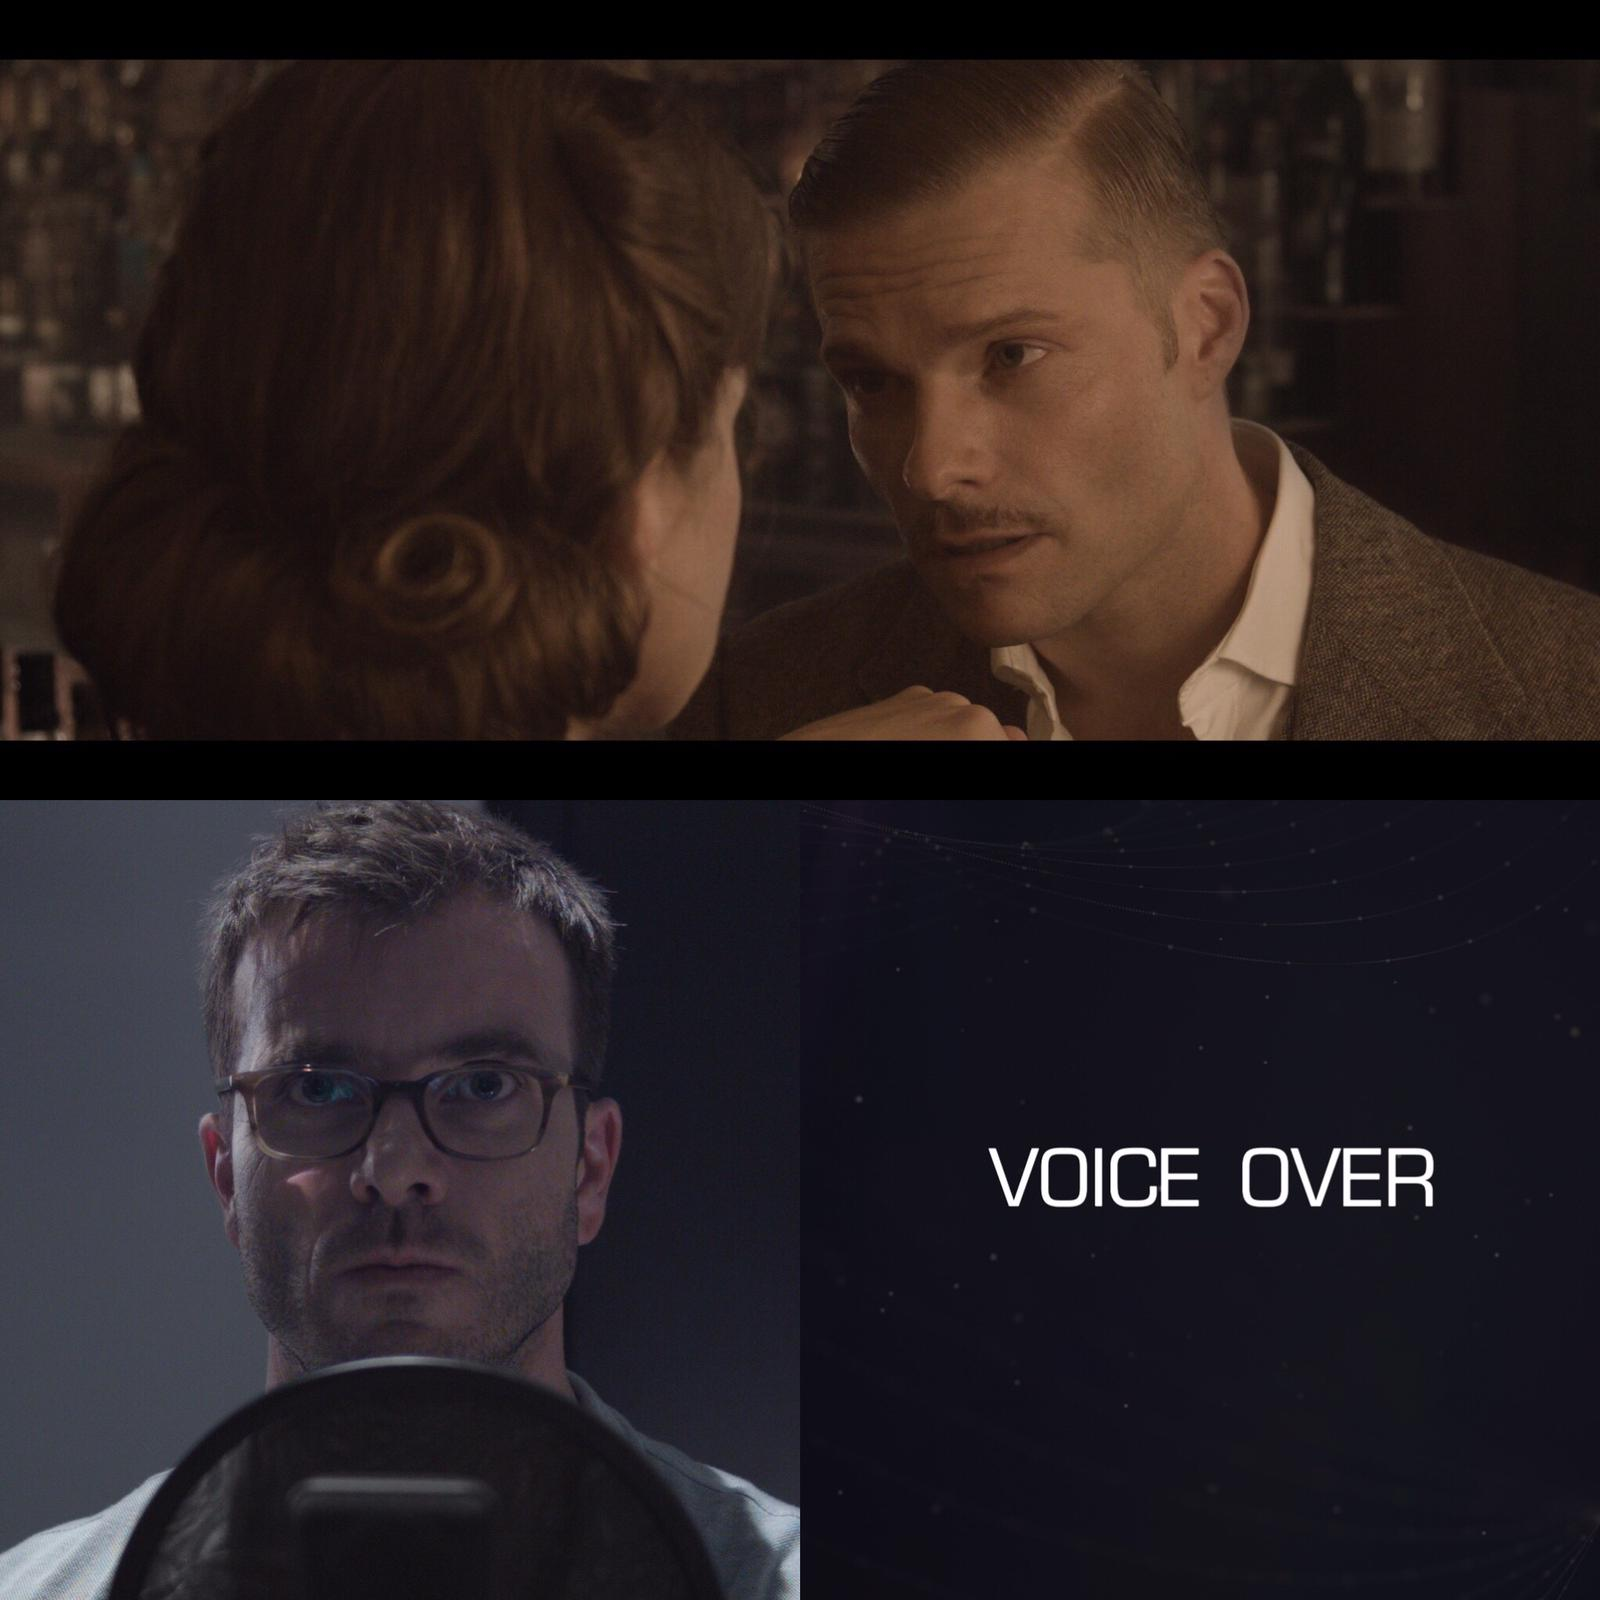 VOICE OVER (short film)